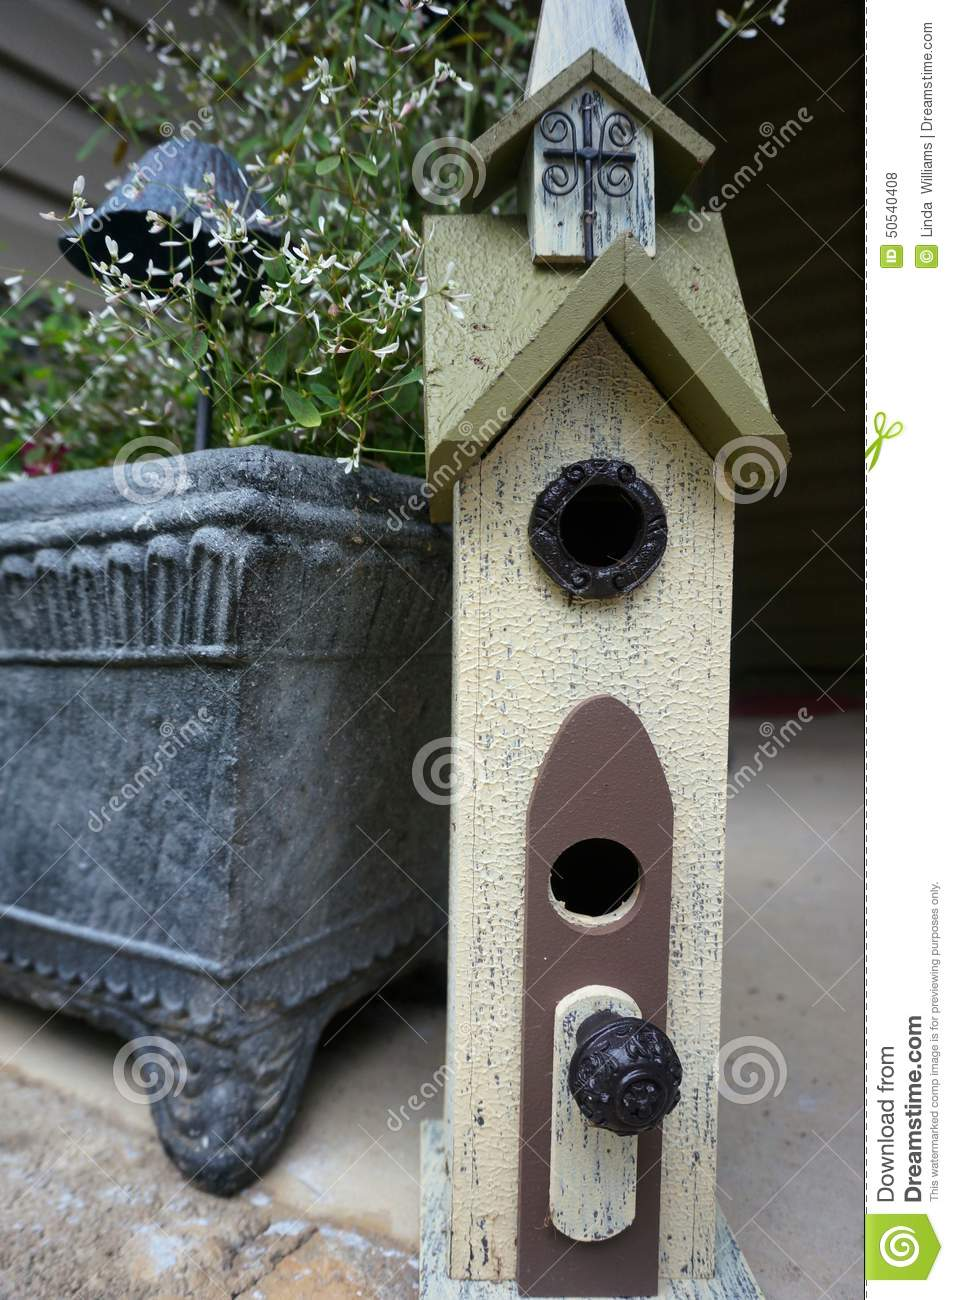 Birdhouse made from found items stock photo image 50540408 for Bird home decor